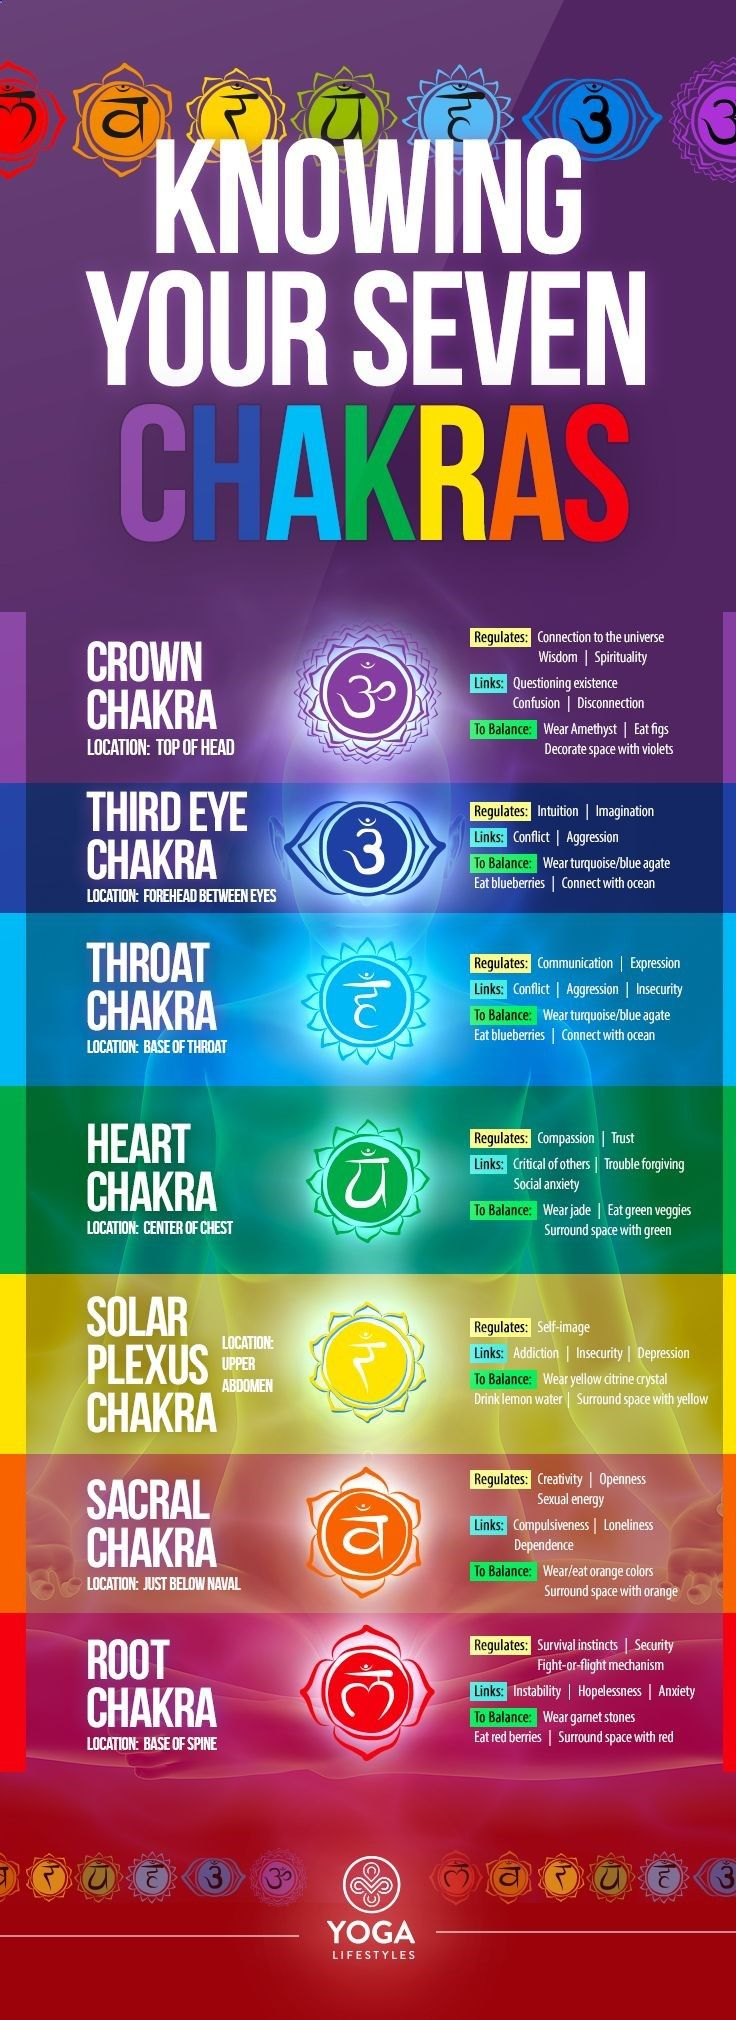 What Chakras Are